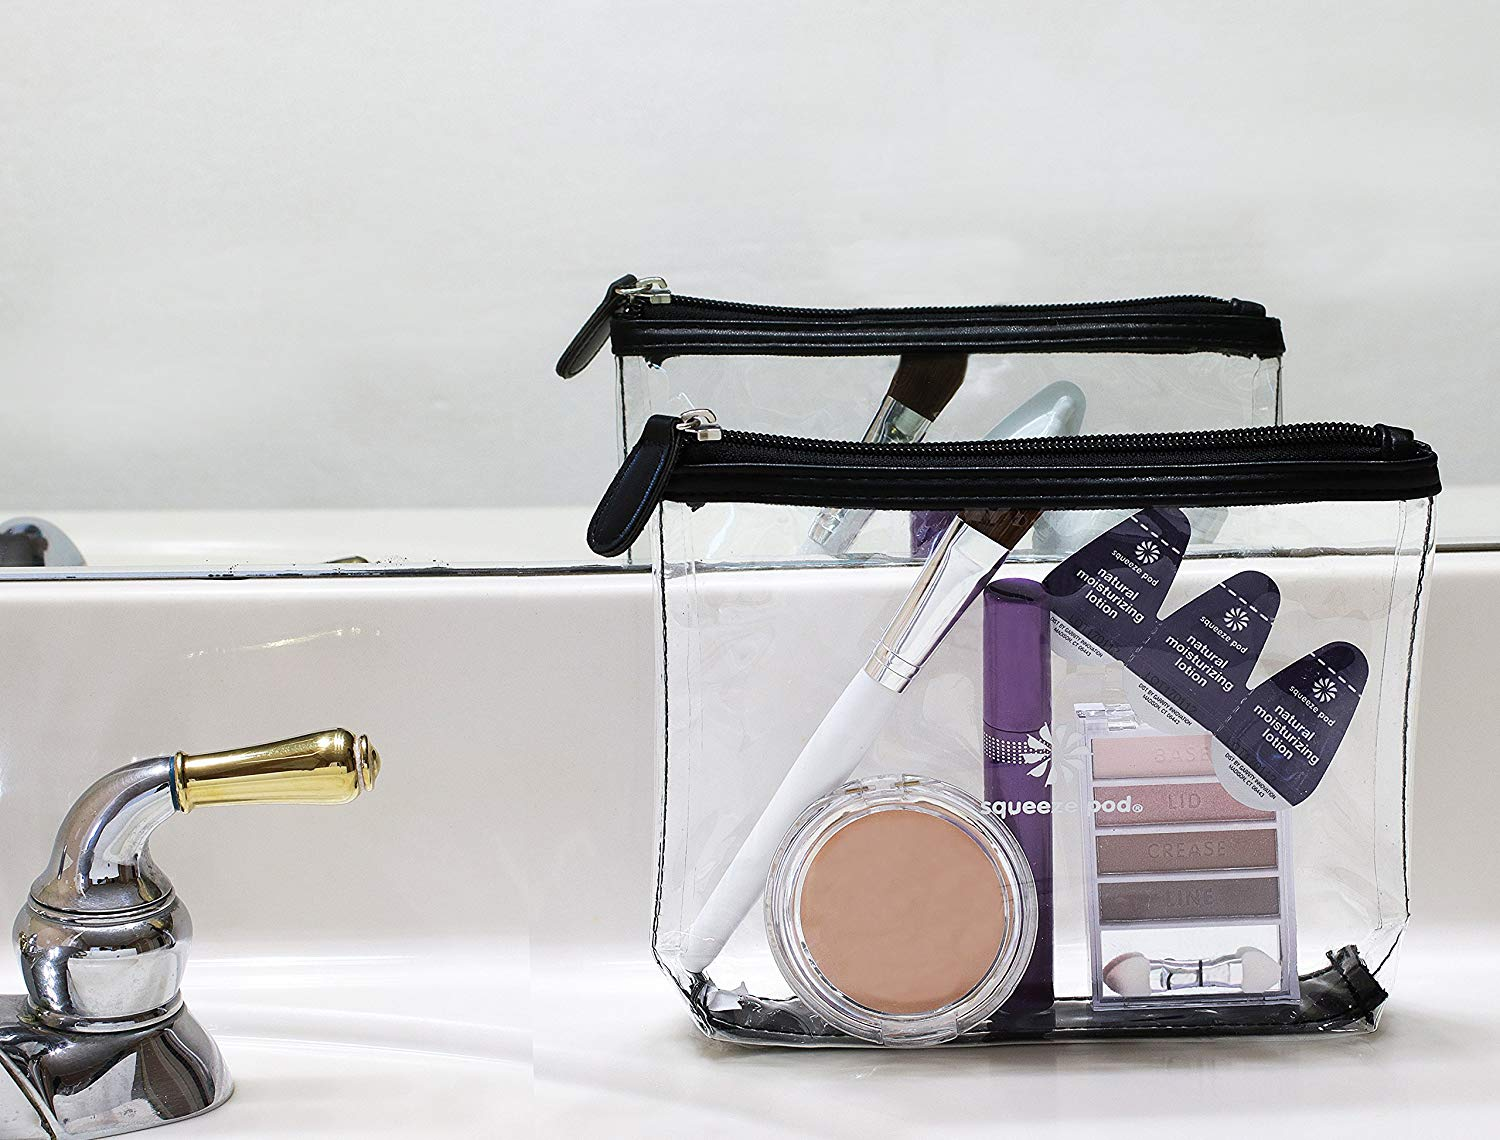 Toiletry bag sitting next to a sink